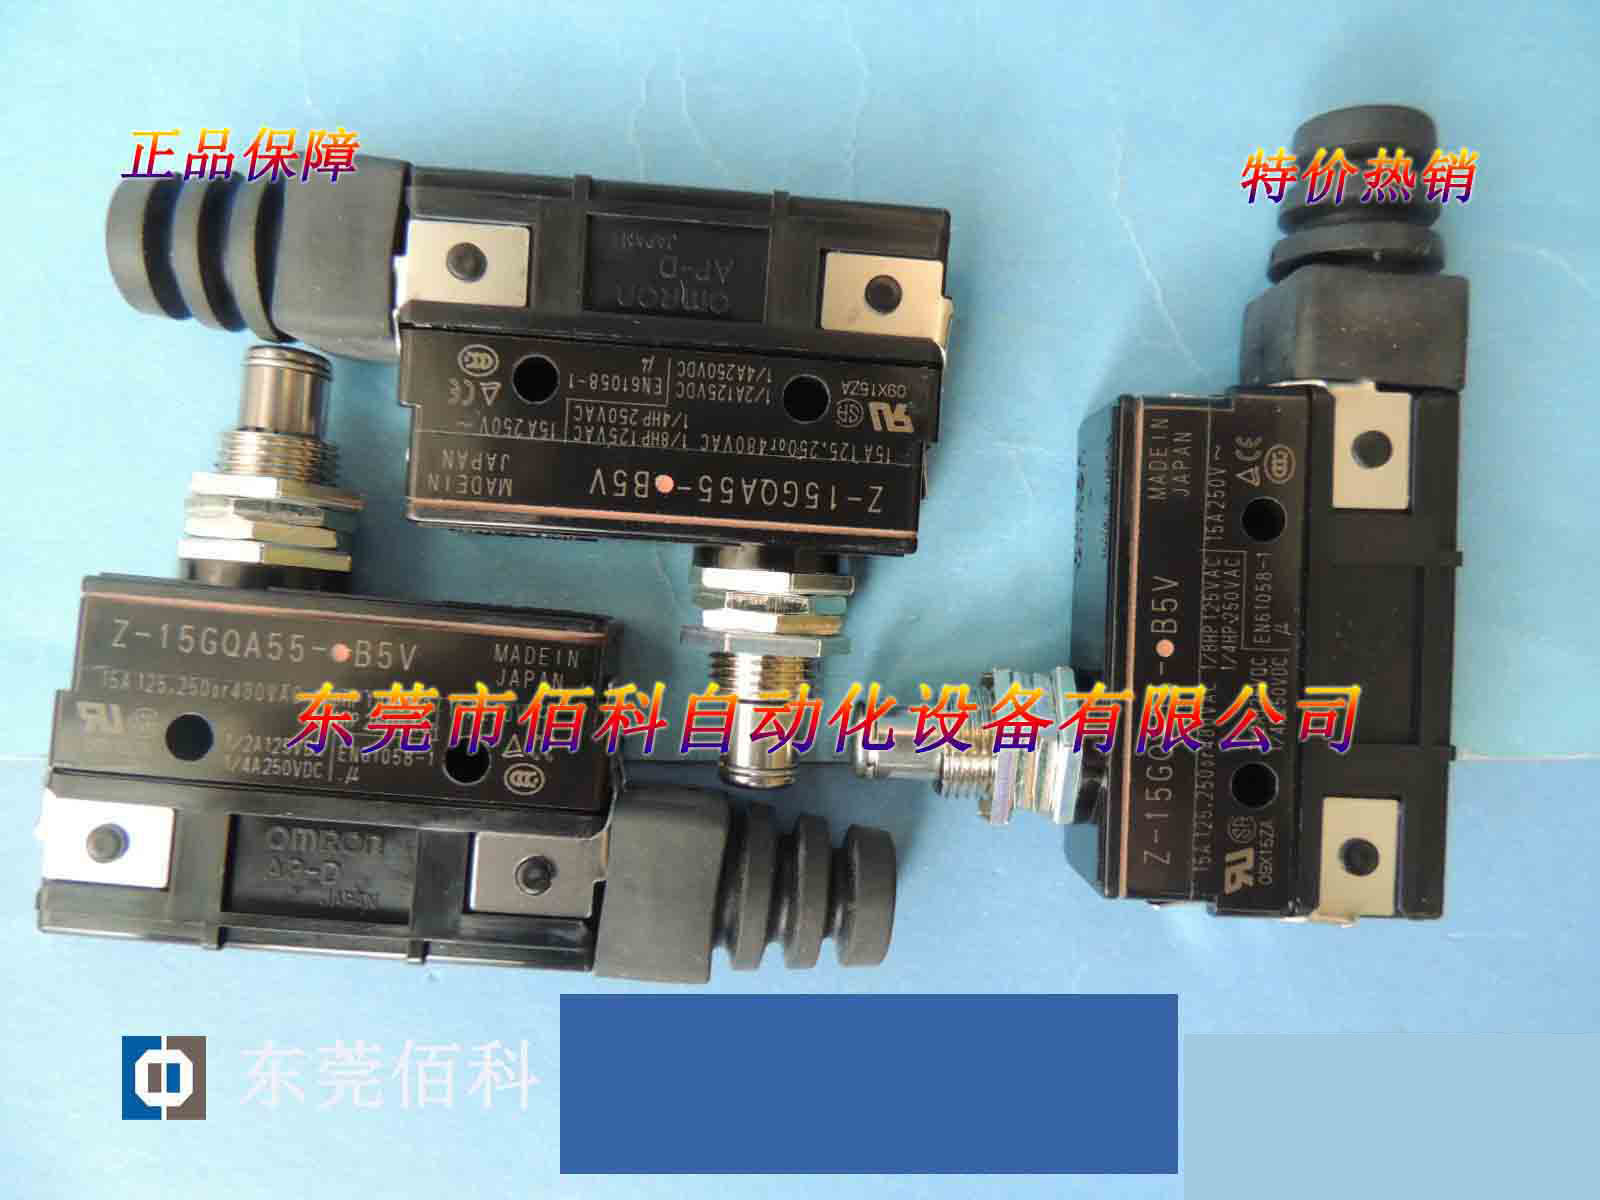 Special price new original omron fretting switch Z-15GQA55-B5VSpecial price new original omron fretting switch Z-15GQA55-B5V